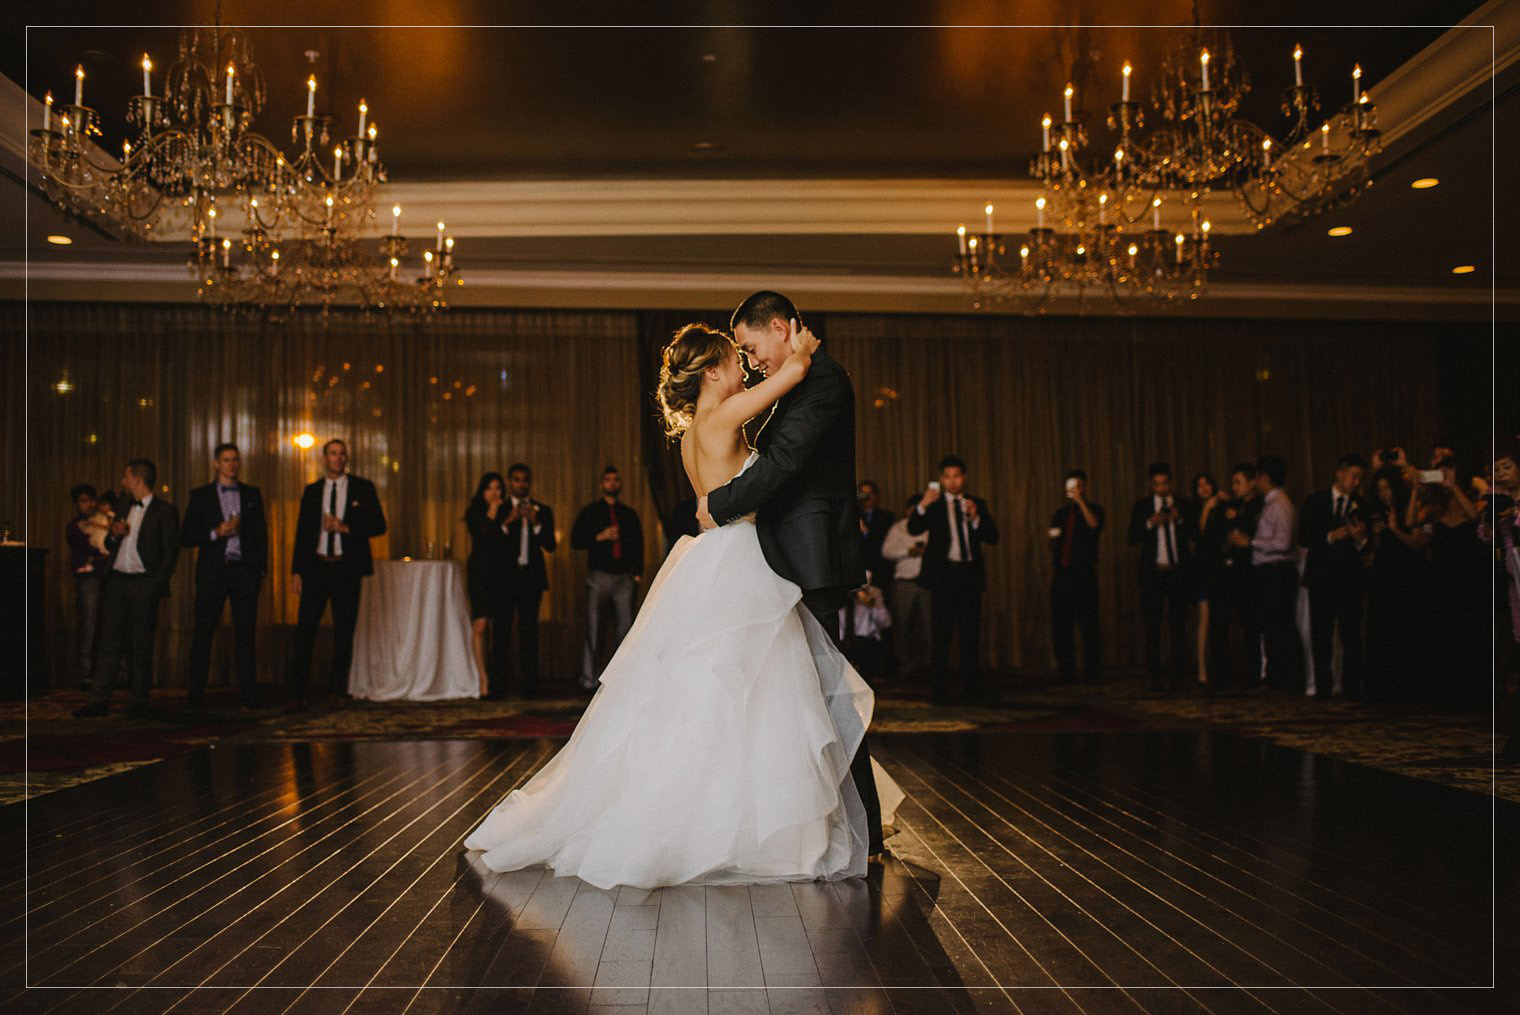 bride and groom dancing in Vancouver hotel ballroom by vancouver photographer mathias fast